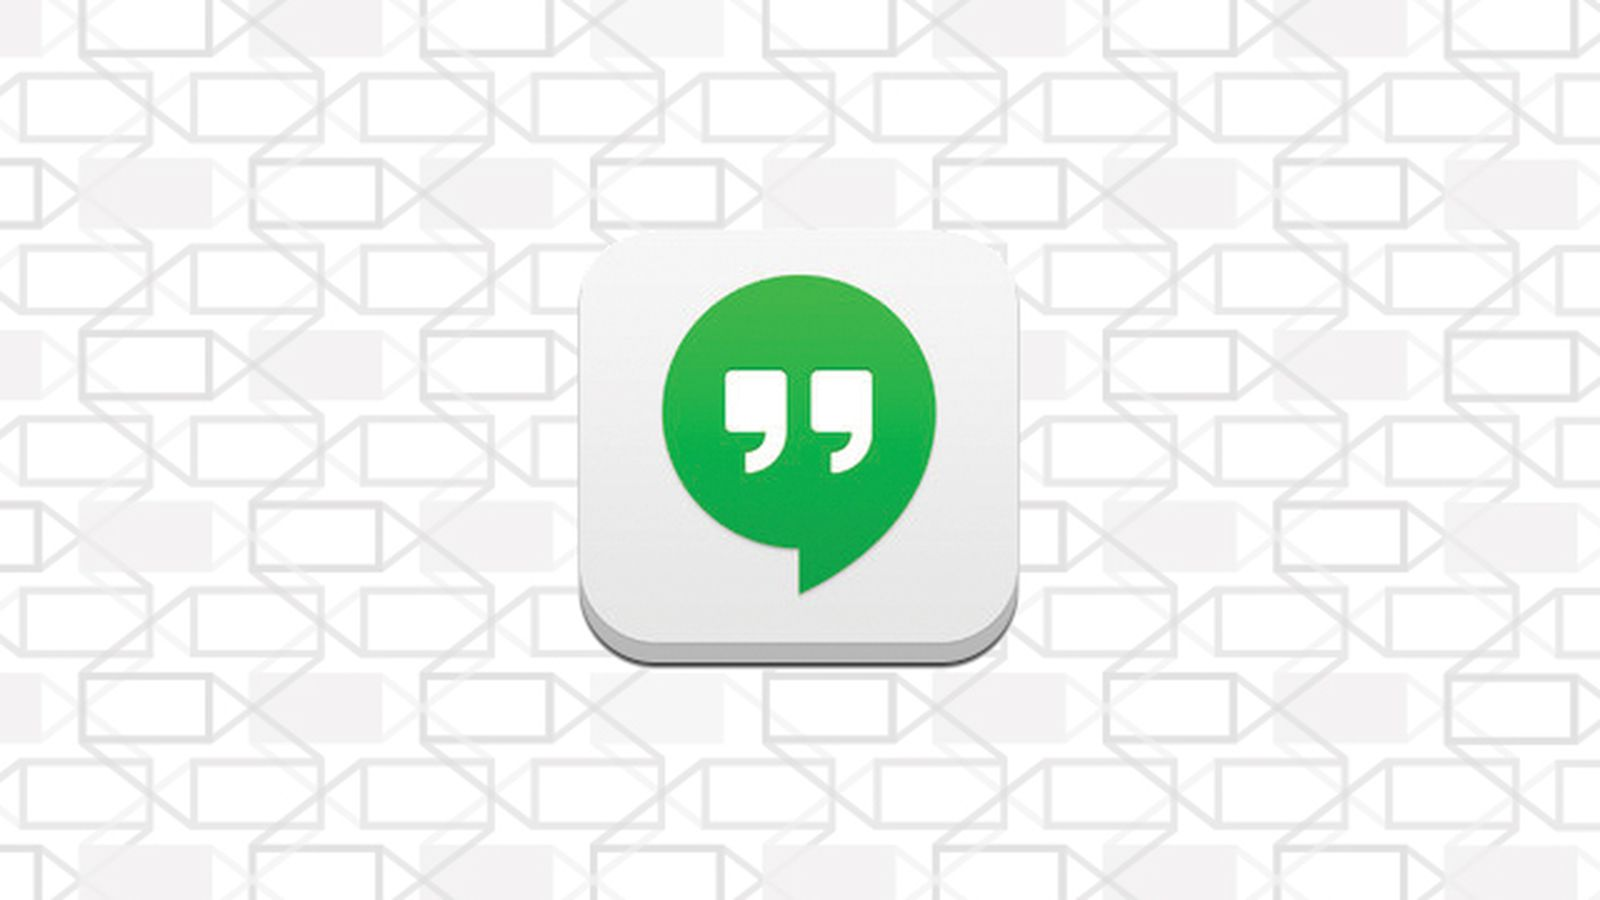 theverge.com - Google is killing Gchat for good and replacing it with Hangouts